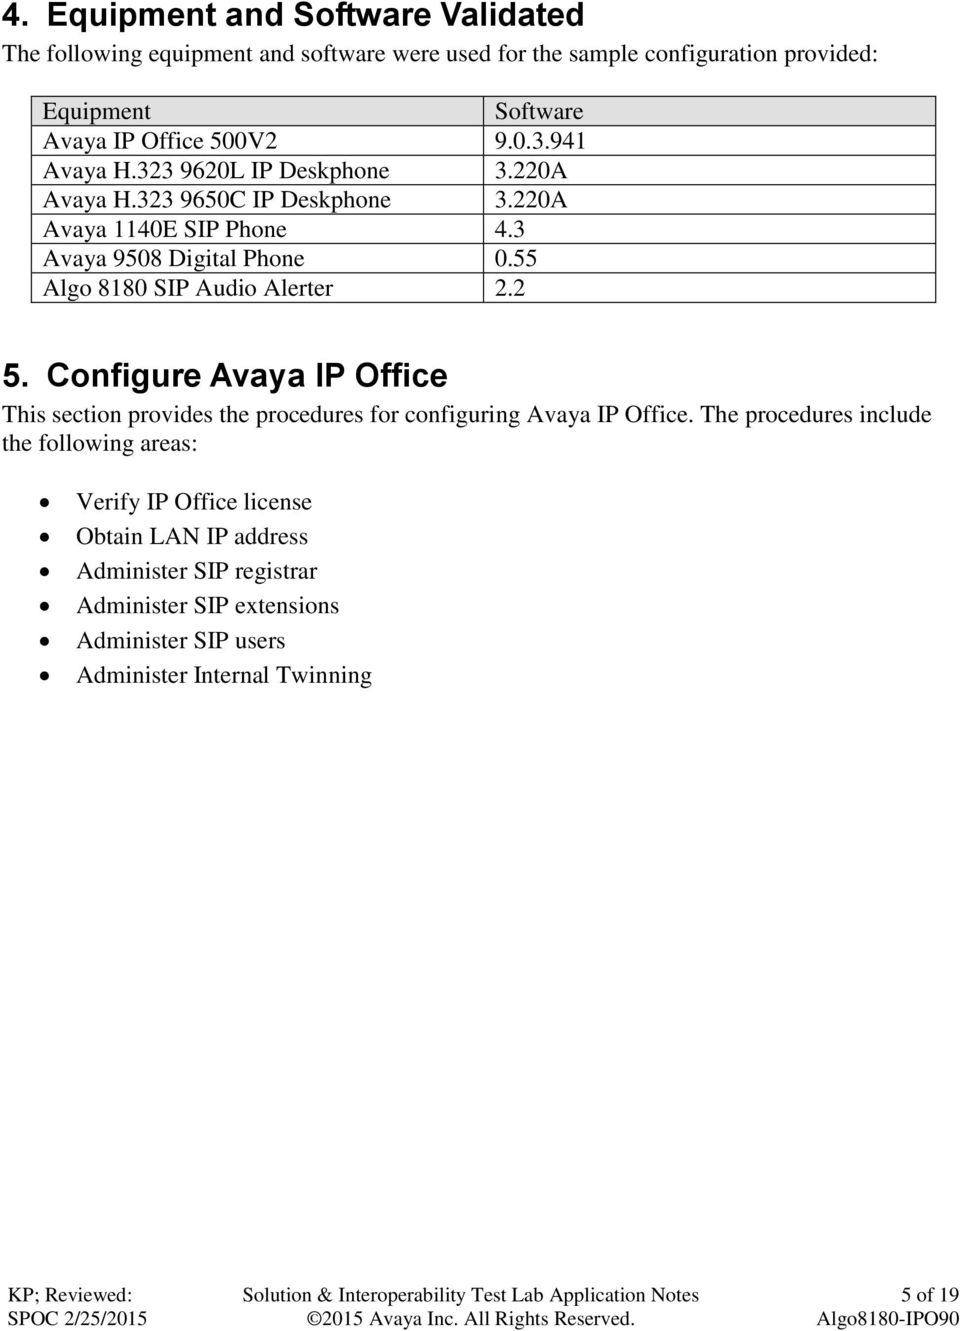 55 Algo 8180 SIP Audio Alerter 2.2 5. Configure Avaya IP Office This section provides the procedures for configuring Avaya IP Office.